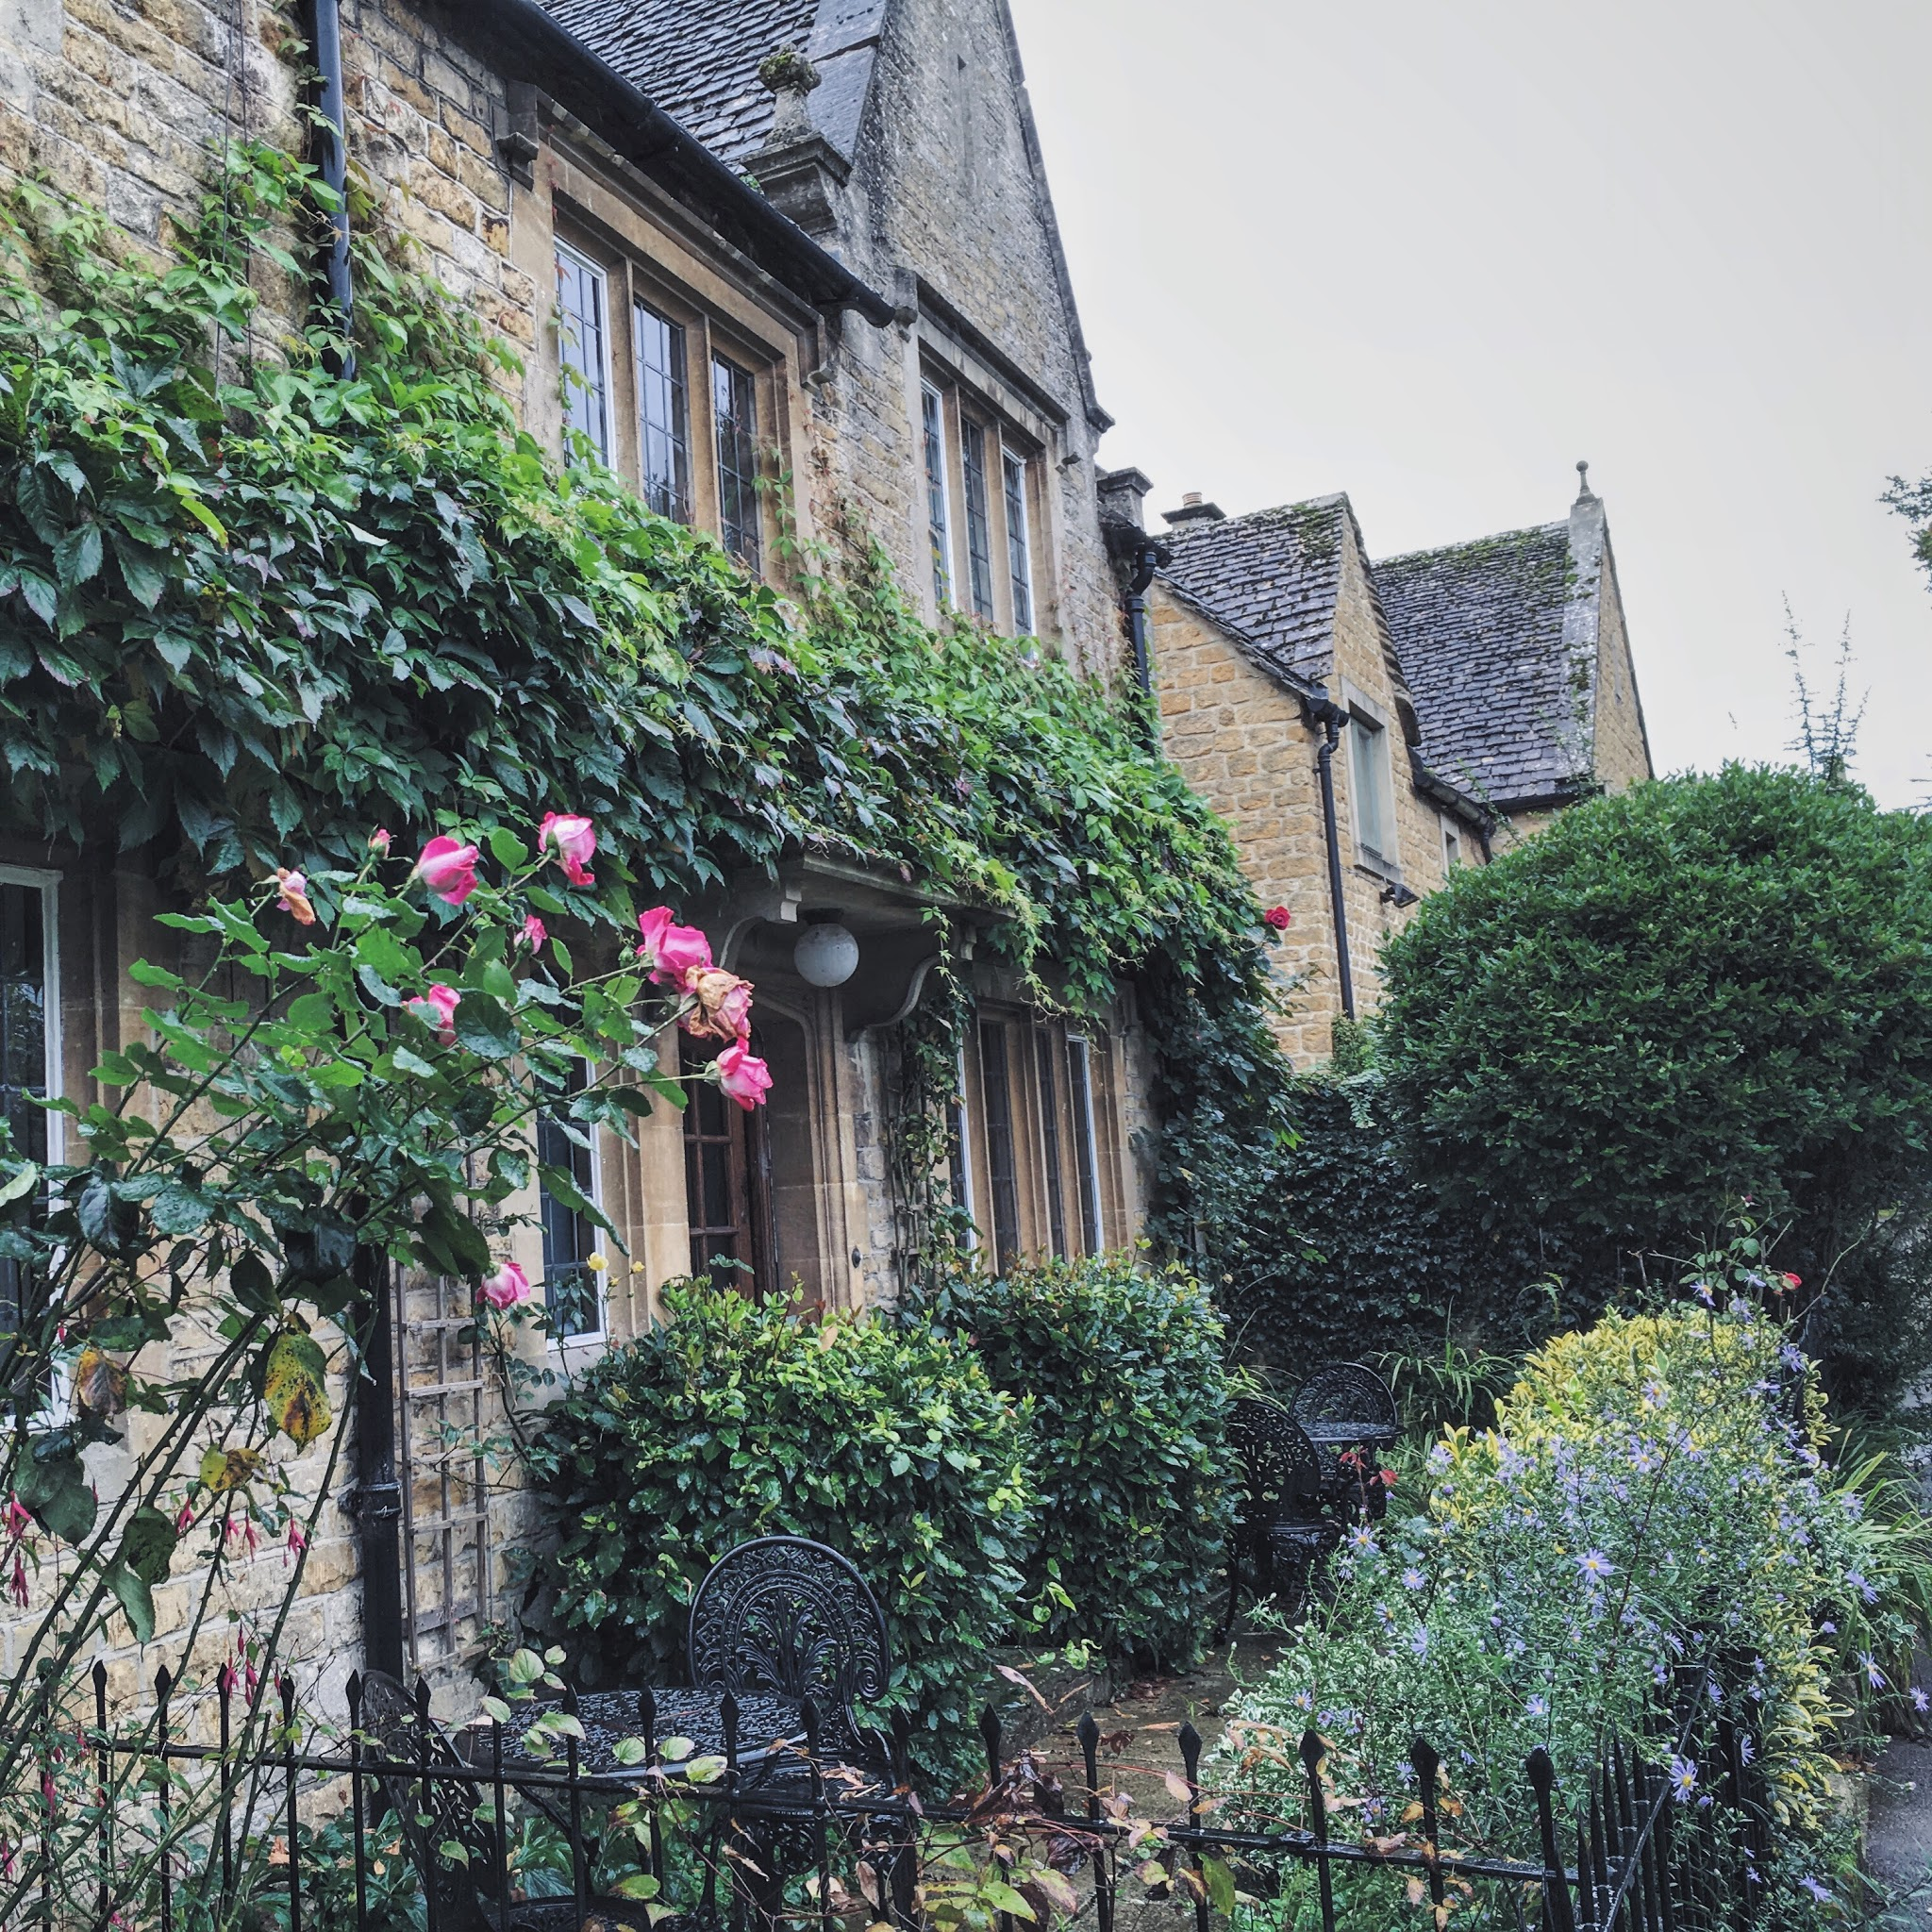 Pretty cottage in the Cotswolds with flowers